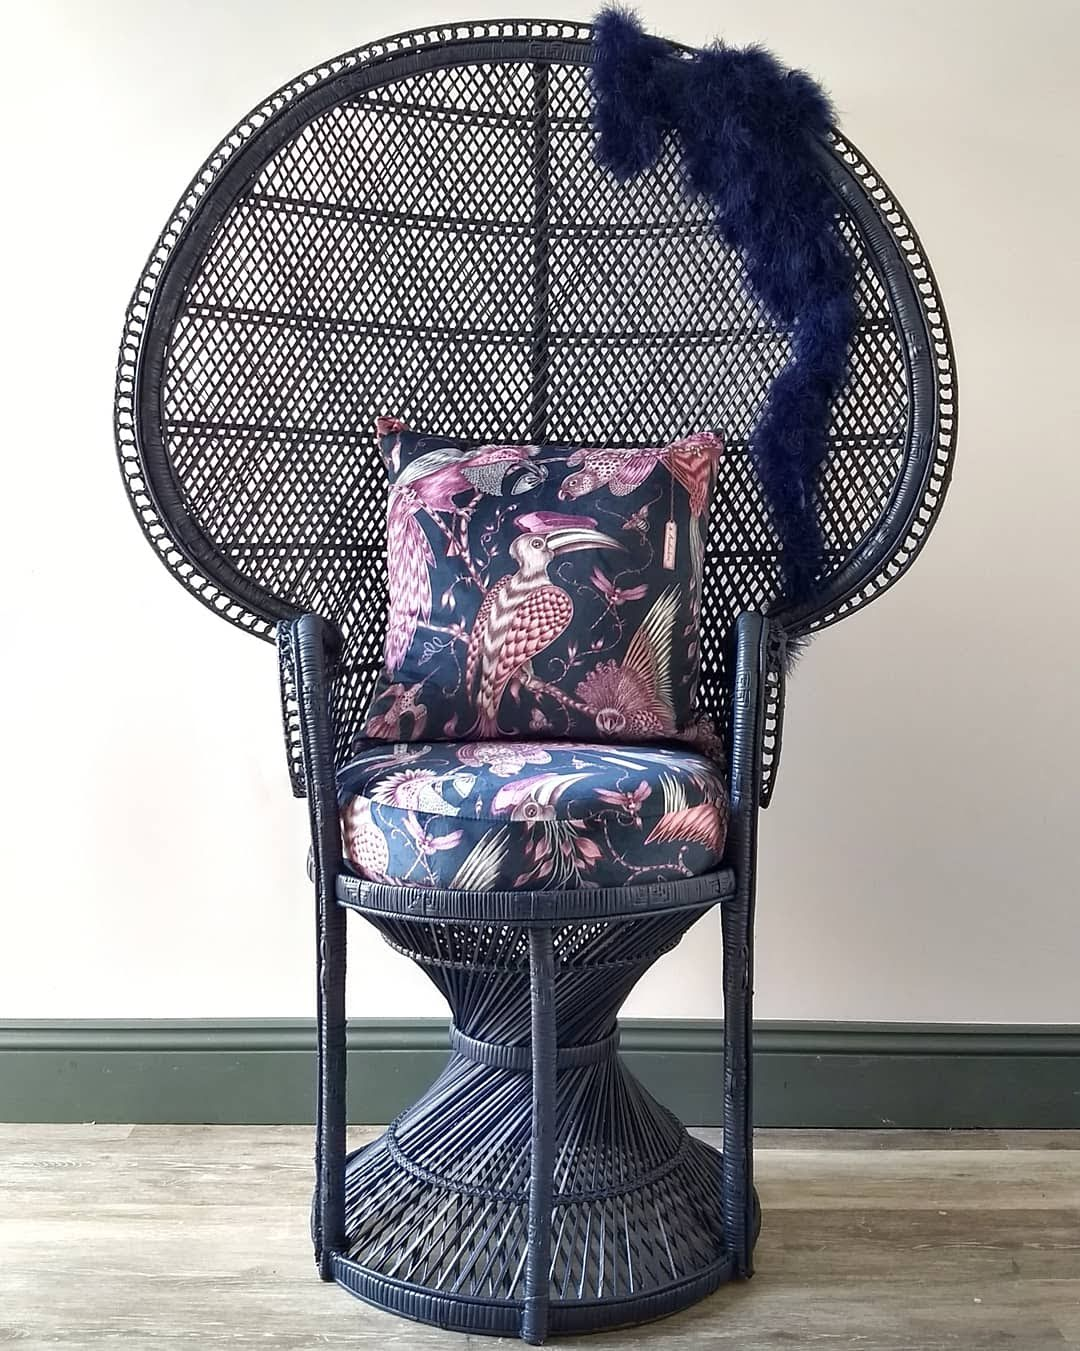 The House of Upcycling: Webb & Gray Hand Painted Vintage Rattan Peacock Chair